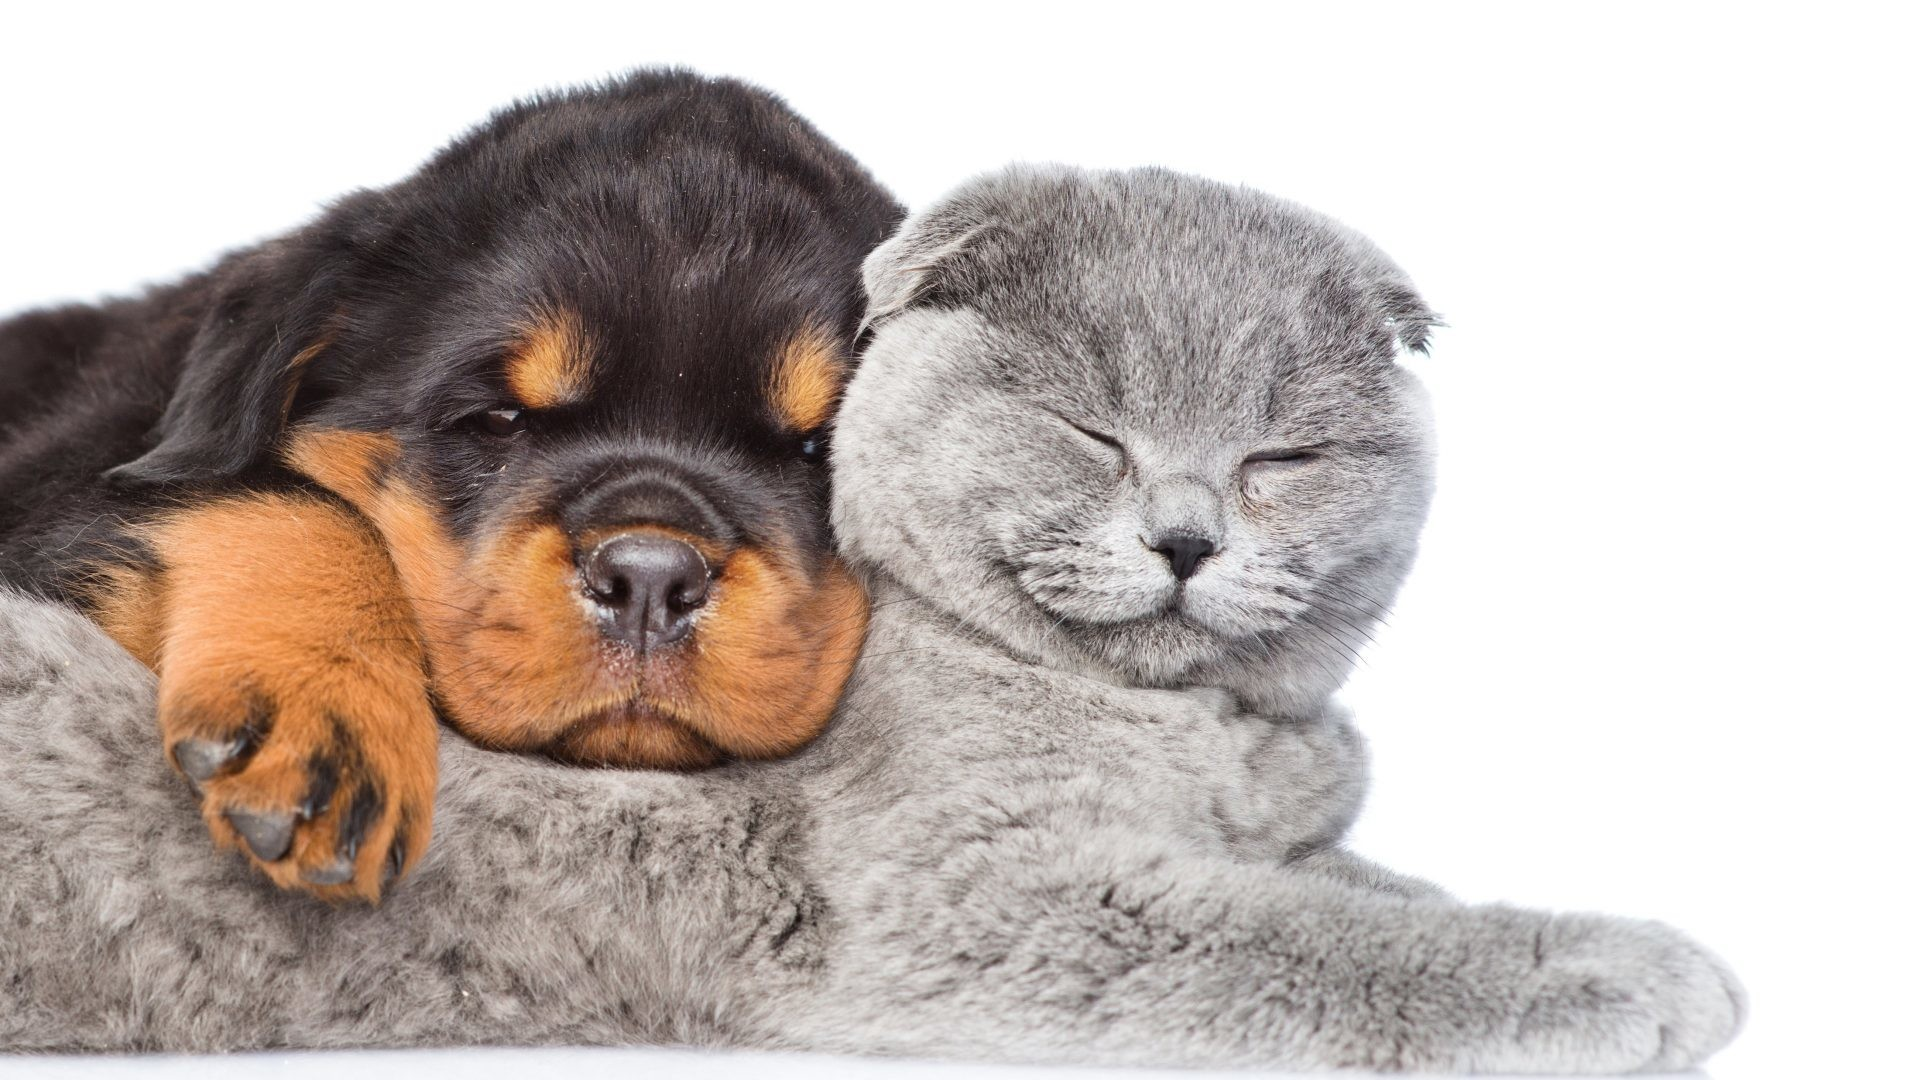 cute cats and dogs wallpaper (54+ images)